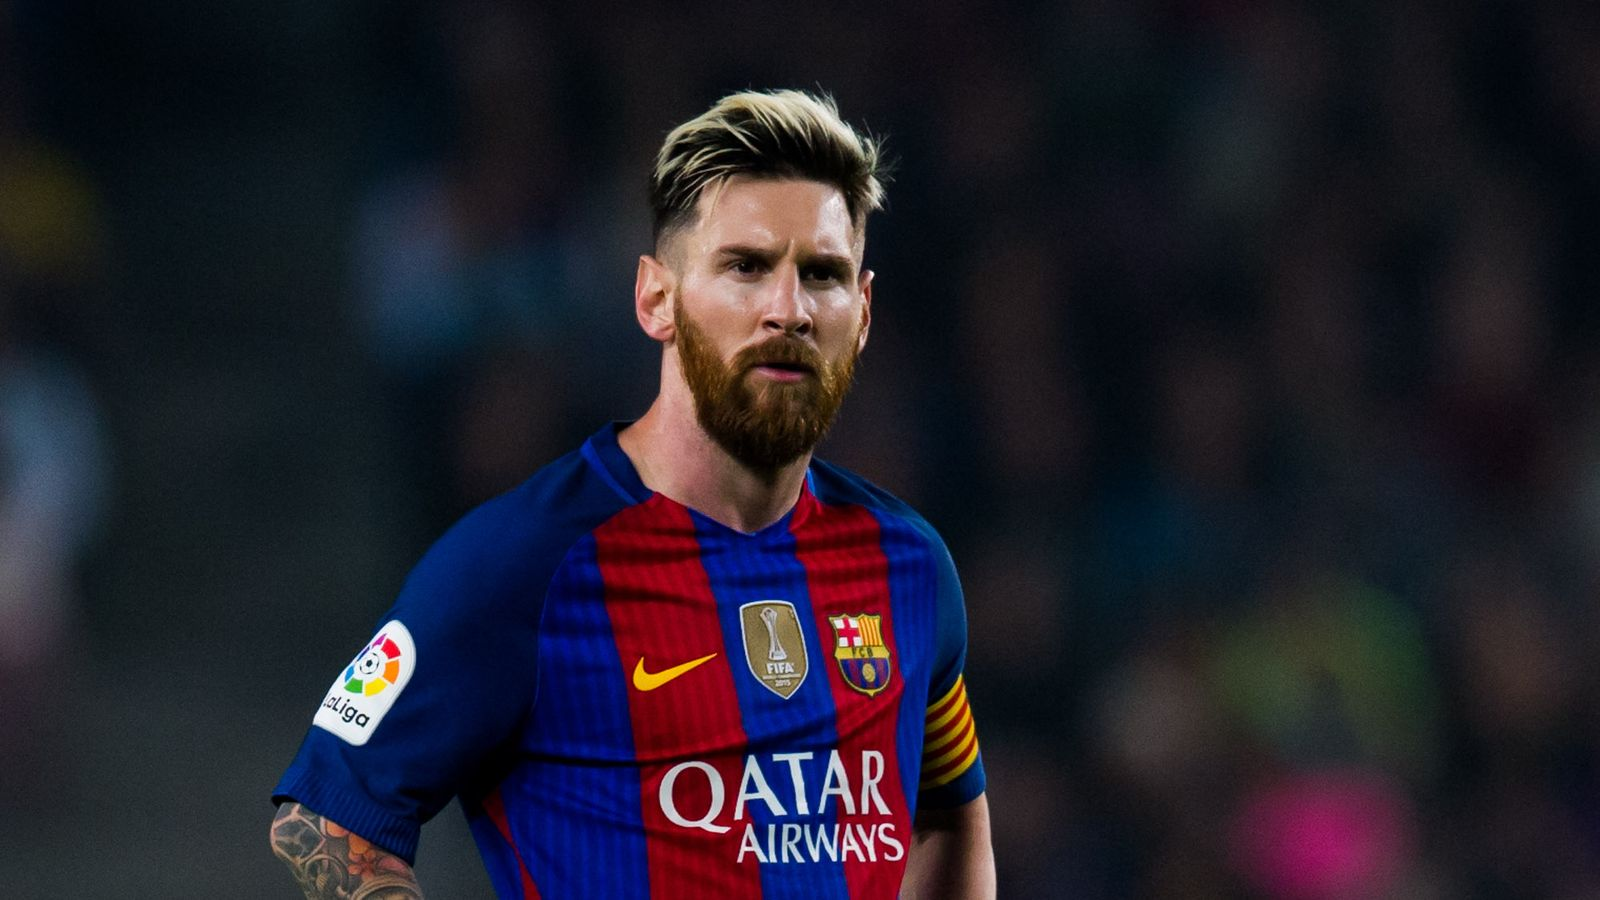 van dong vien co thu nhap cao nhat the gioi 2017 - Lionel Messi - elle man